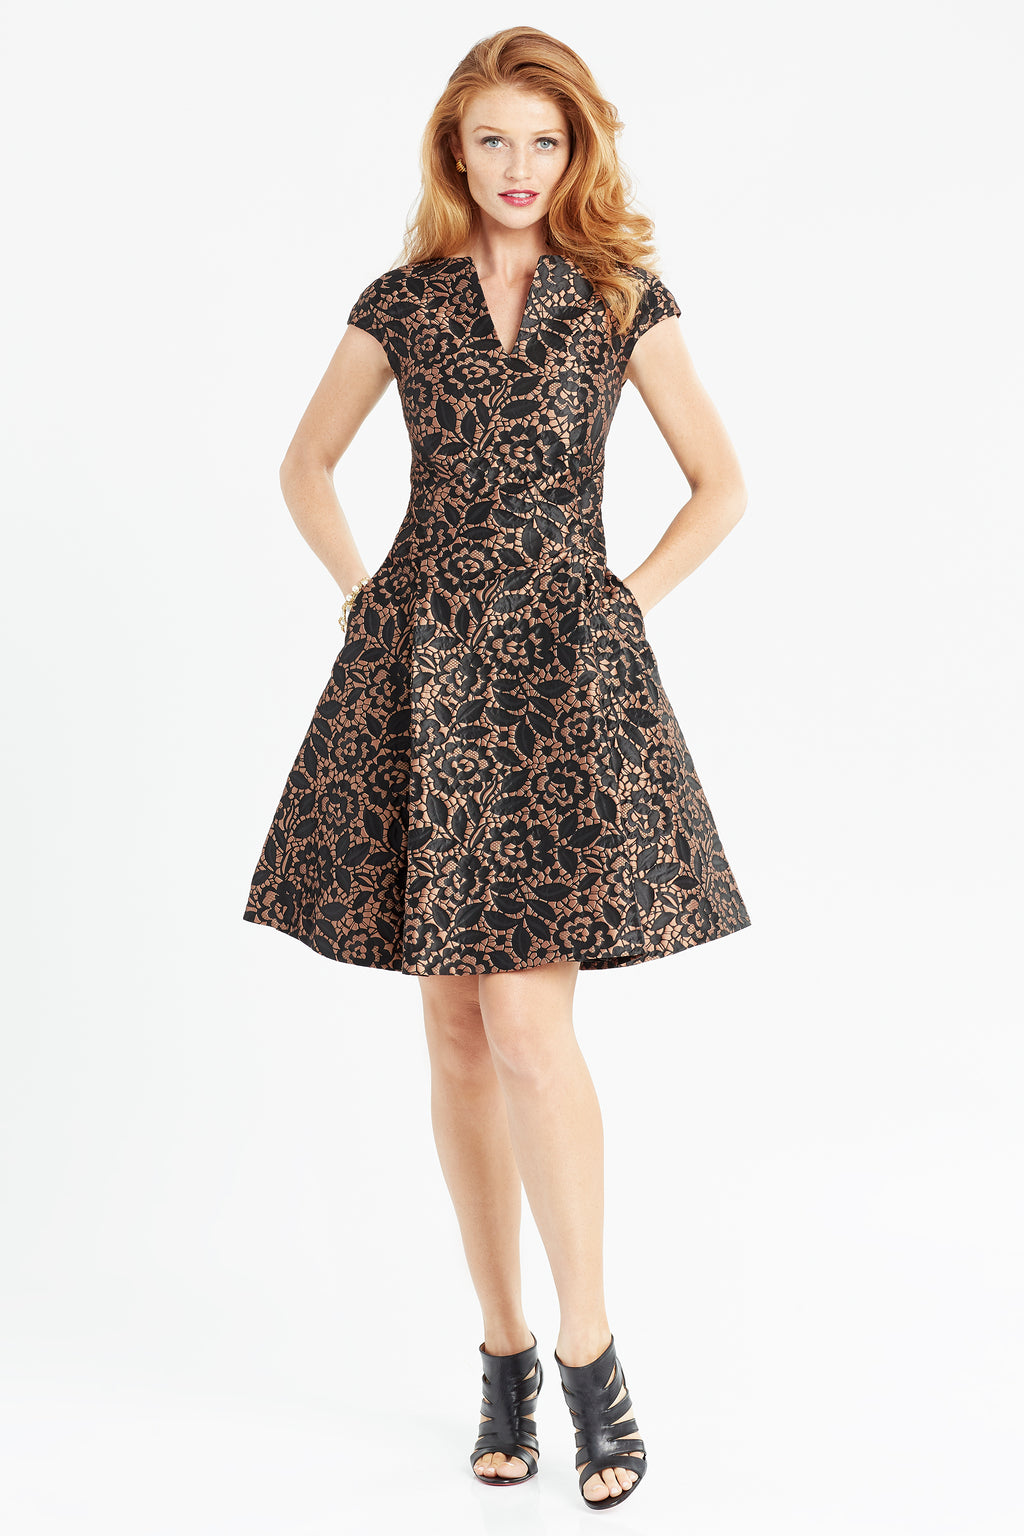 Brocade fit and flare dress in black and copper